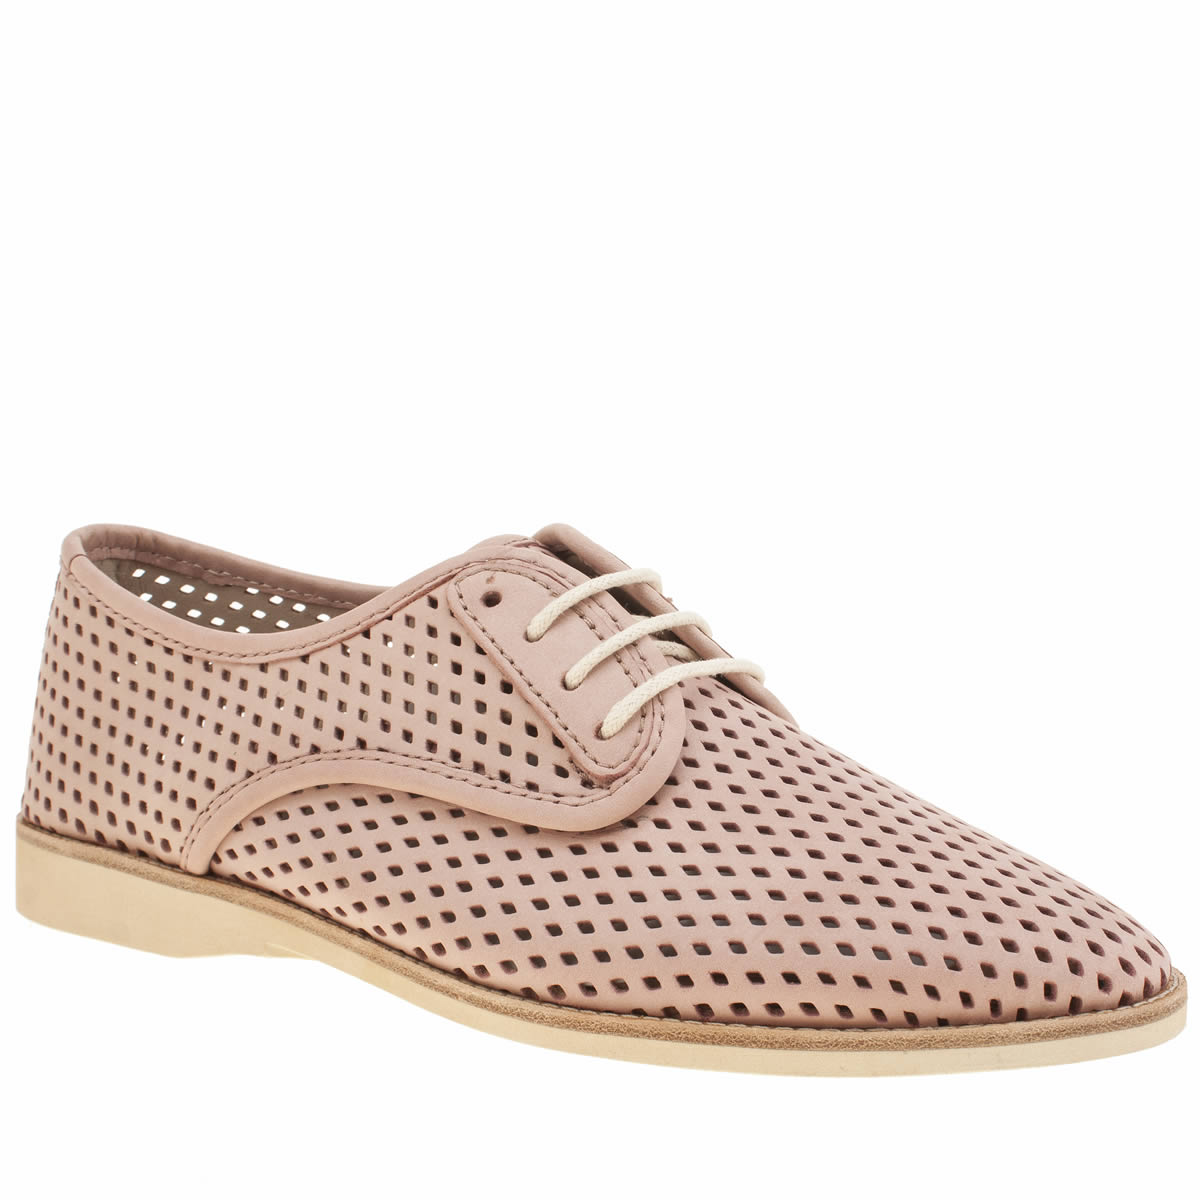 rollie nation Rollie Nation Pale Pink Derby Punch Womens Flats